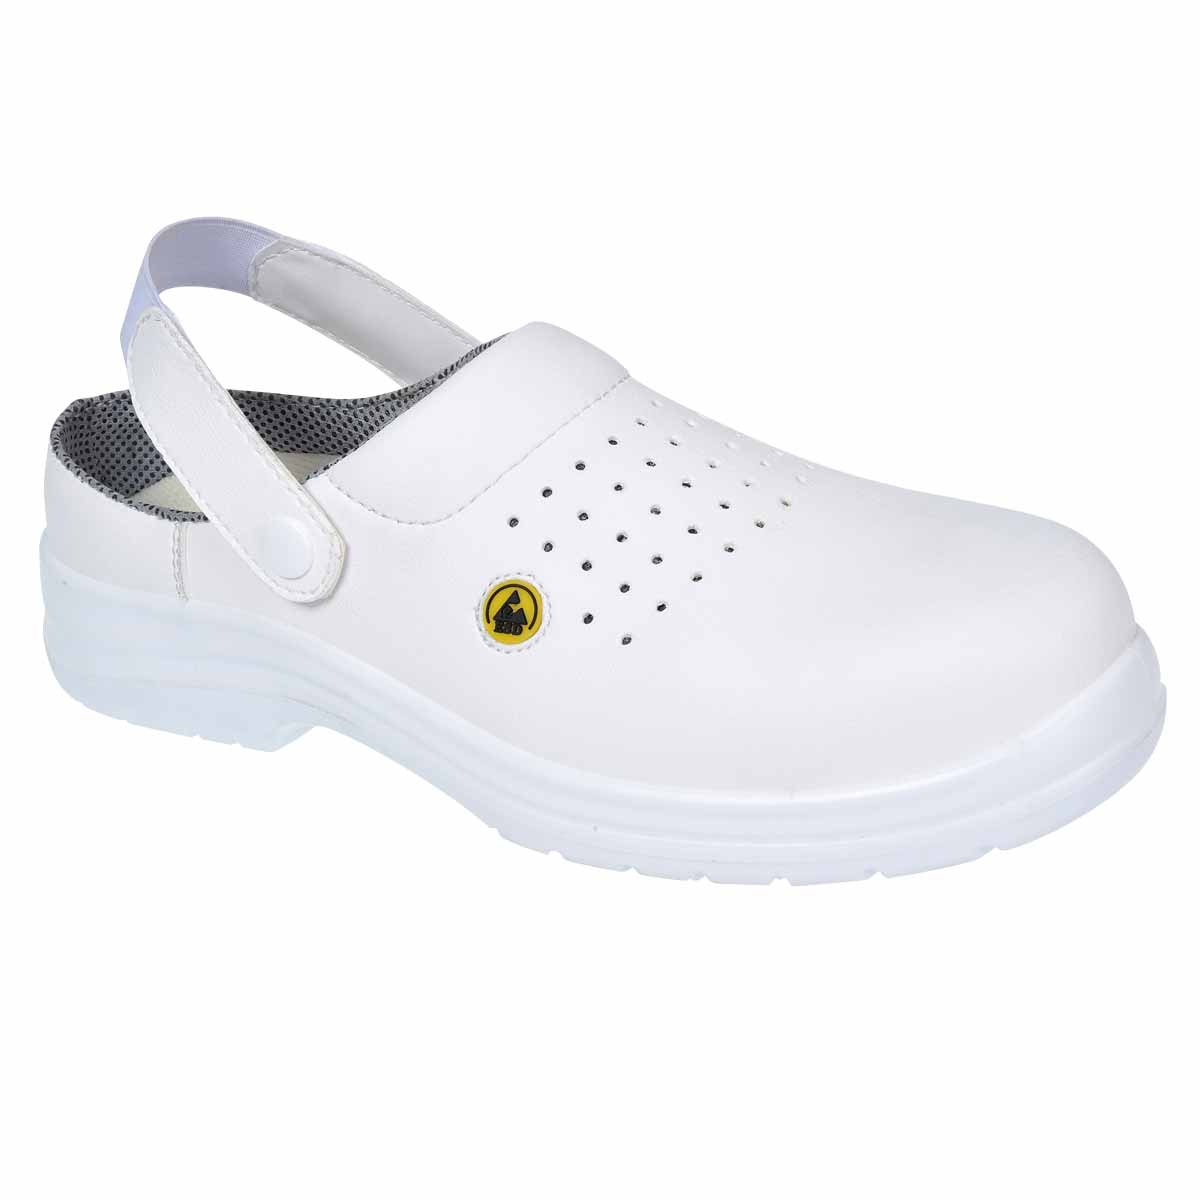 Compositelite Esd Perforated Safety Clog - FC03WHR